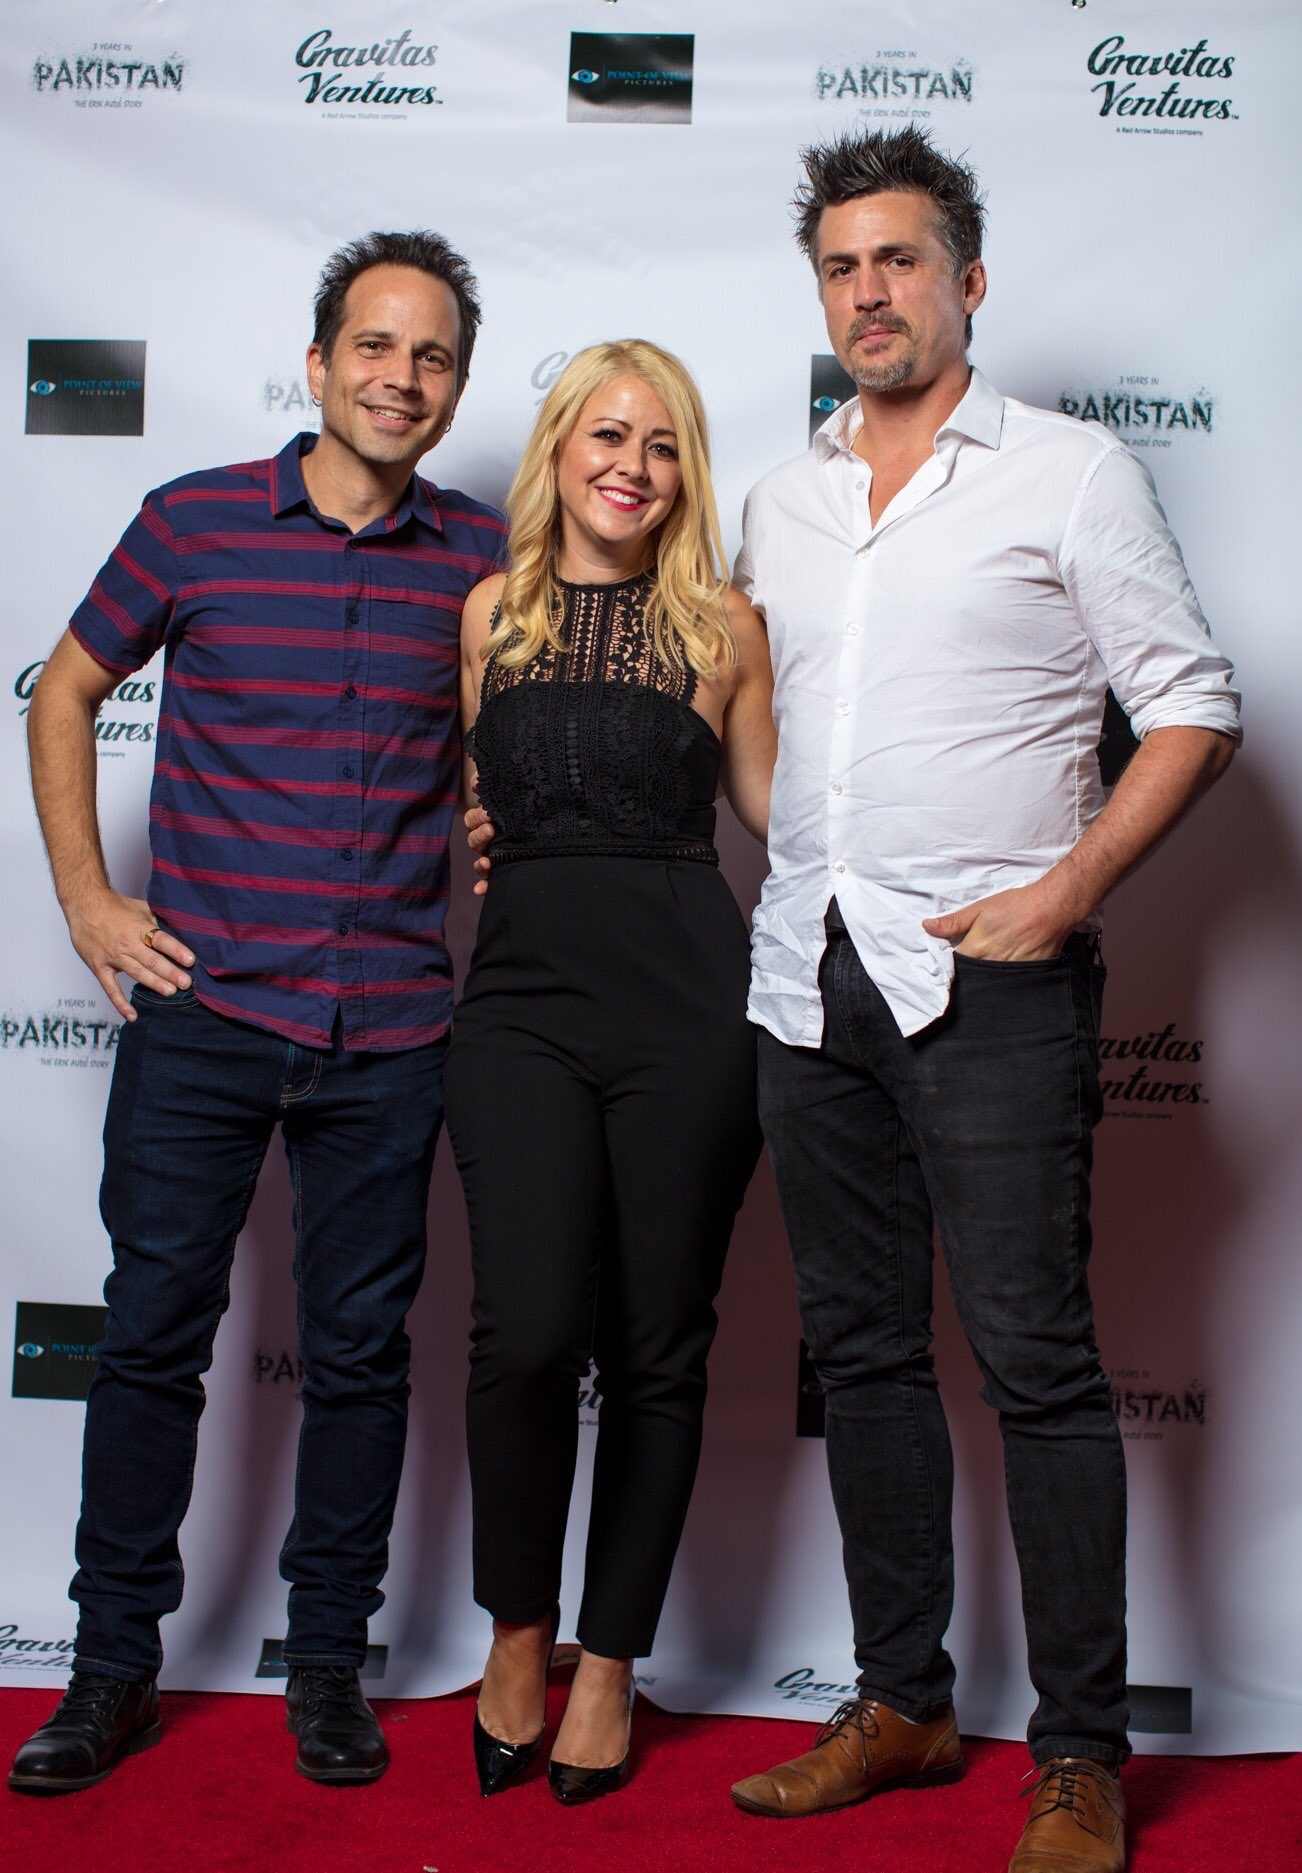 At the premiere of 3 Years In Pakistan: The Erik Aude Story with director Jamielyn Lippman and composer Stephen Light